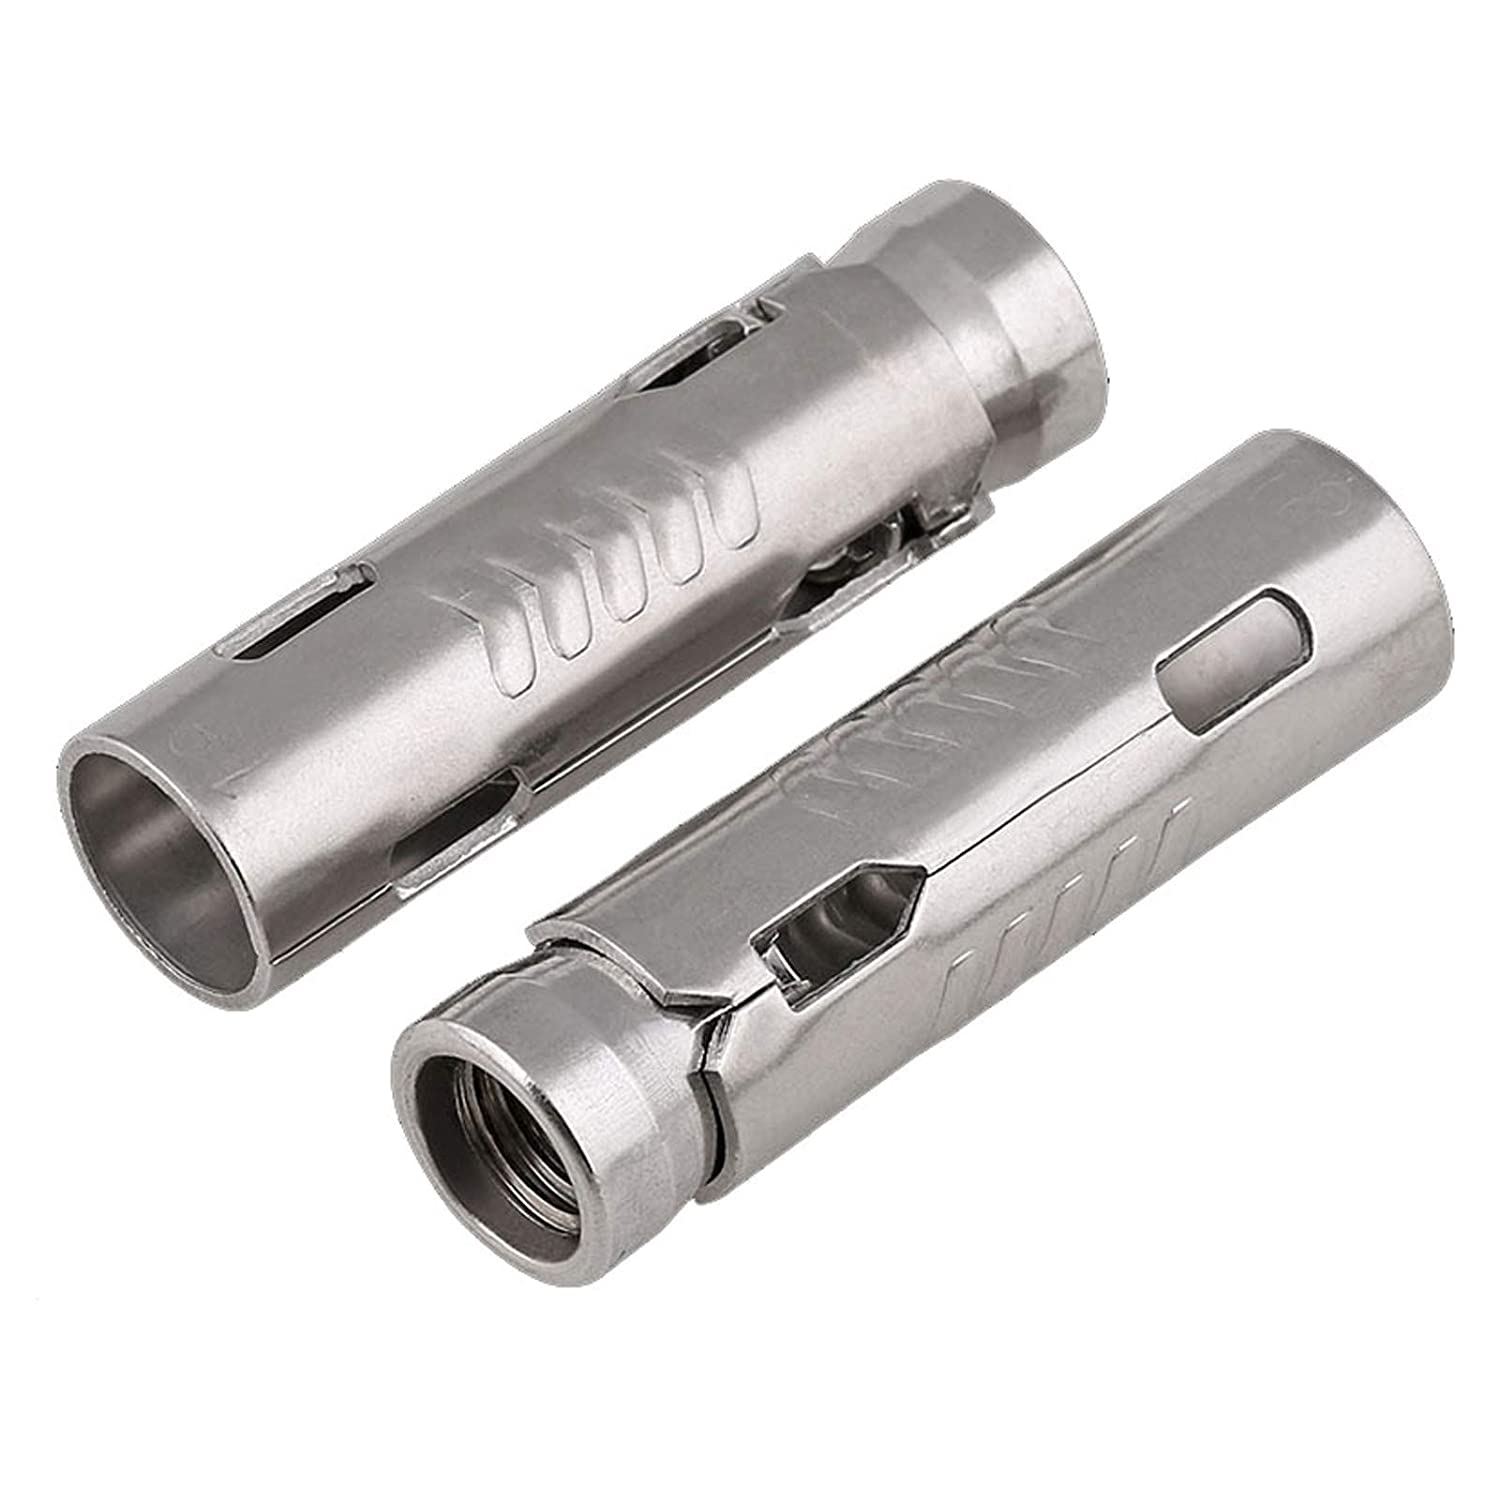 5 Pcs) L-A M8 304 Stainless Steel Expansion Tube Anchor Expansion Pipe Internal Expansion Bolt M8 for Solid Wall and Drywall Anchor